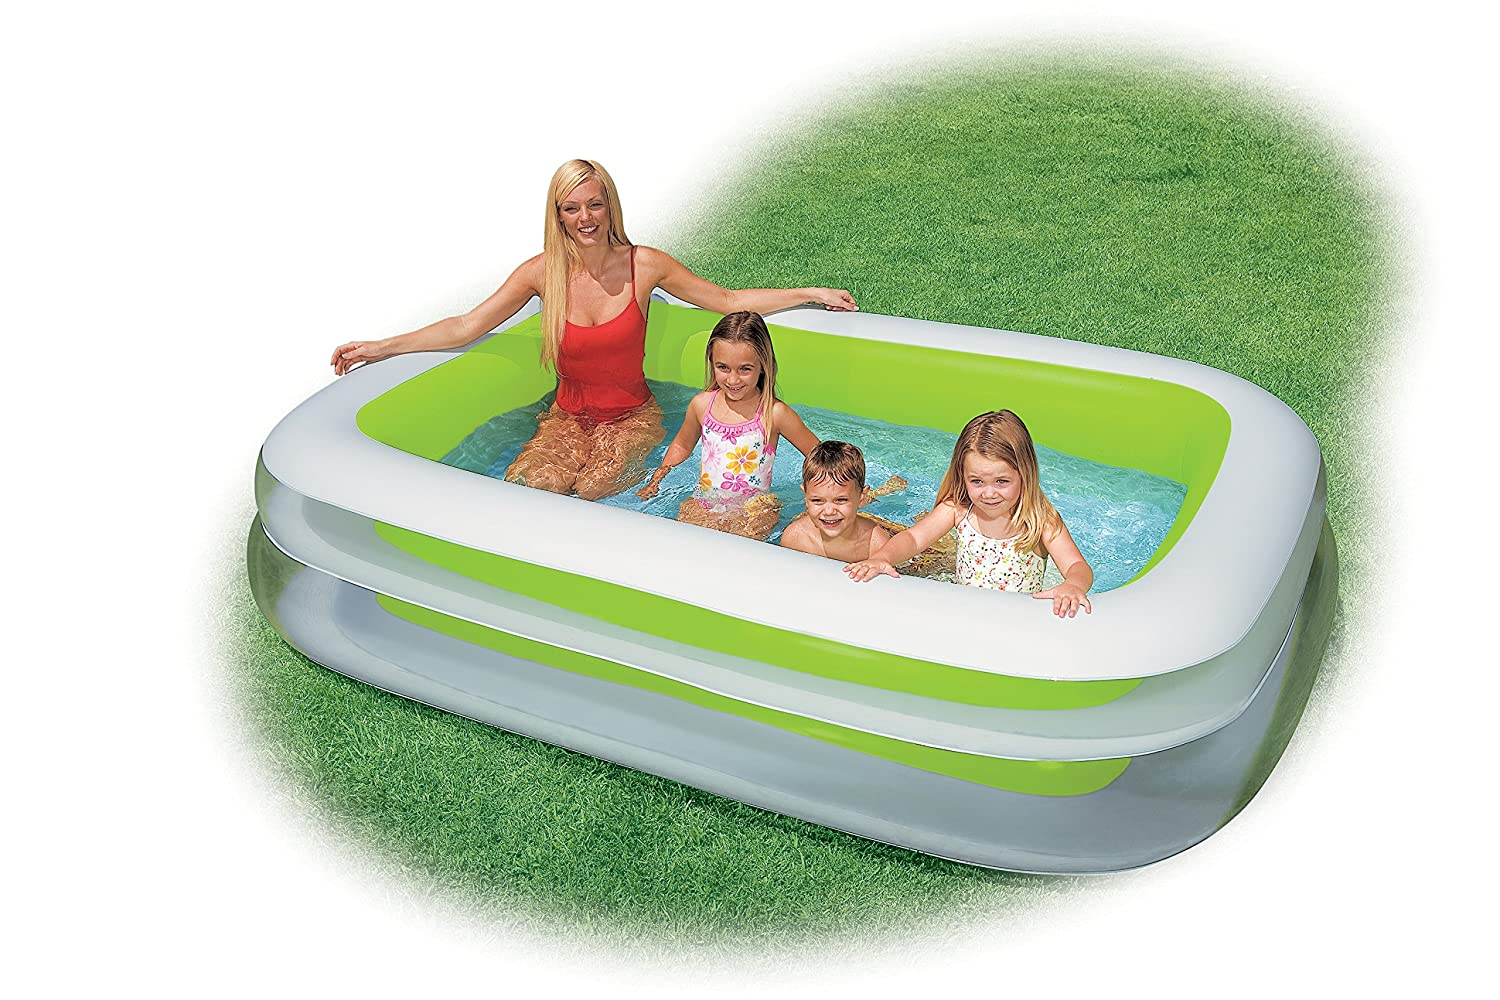 intex swim center family inflatable pool 103 x 69 x 22 for ages 6 new f ebay